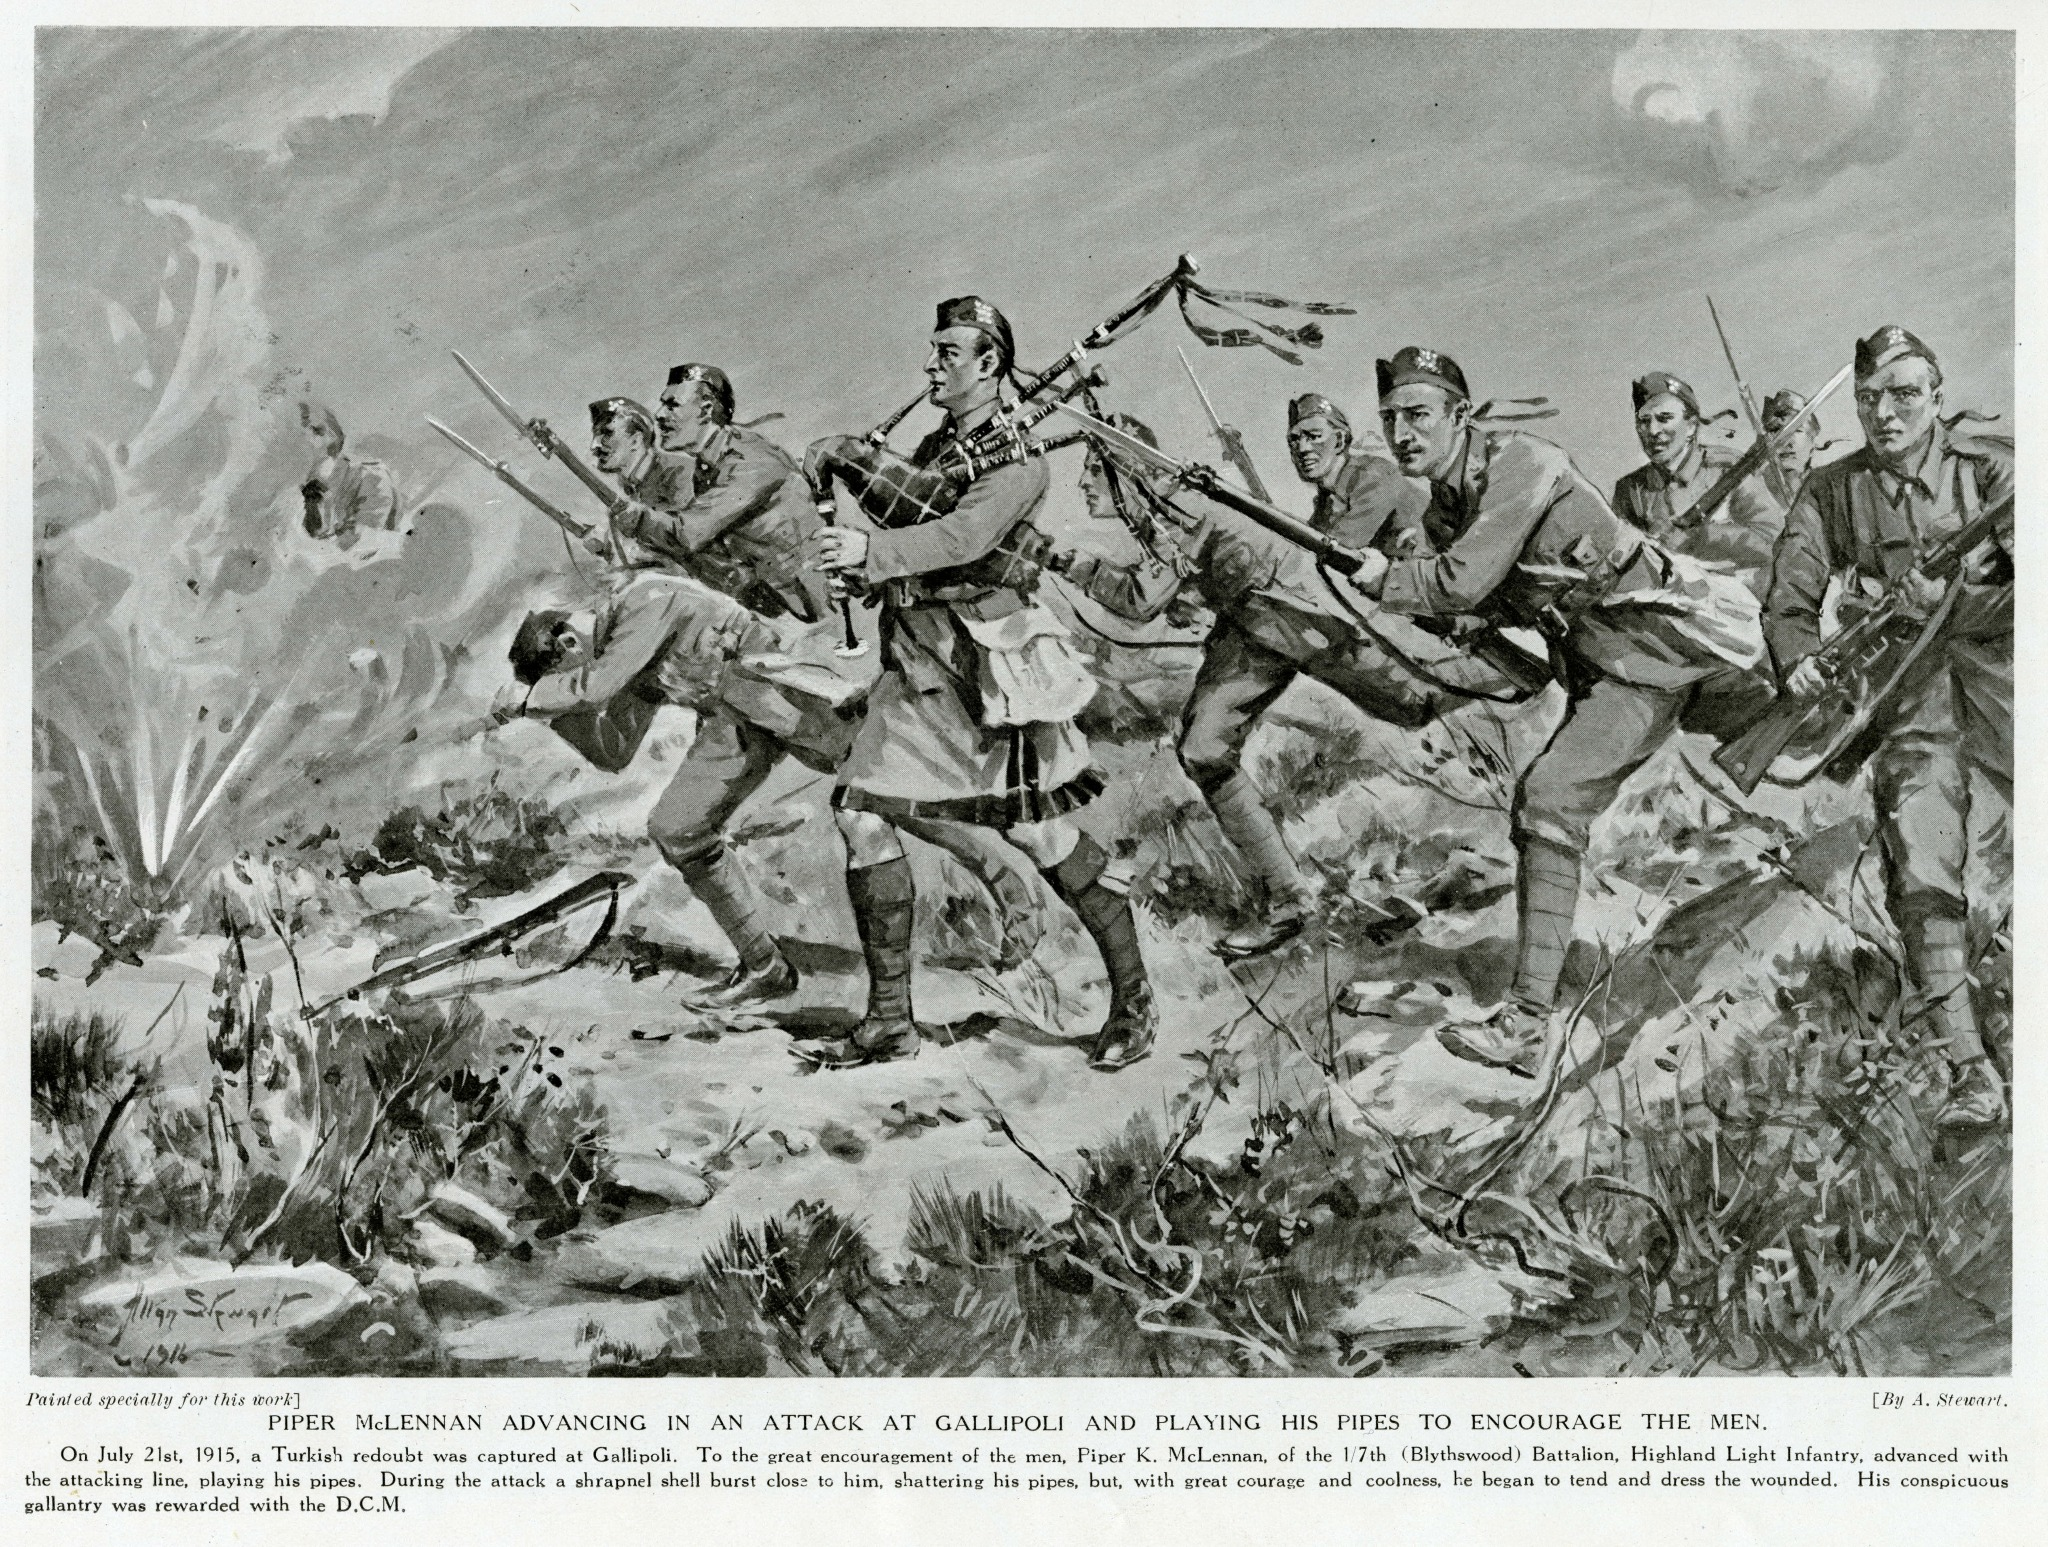 An illustration of the prigins of bagpipes being played during World War One